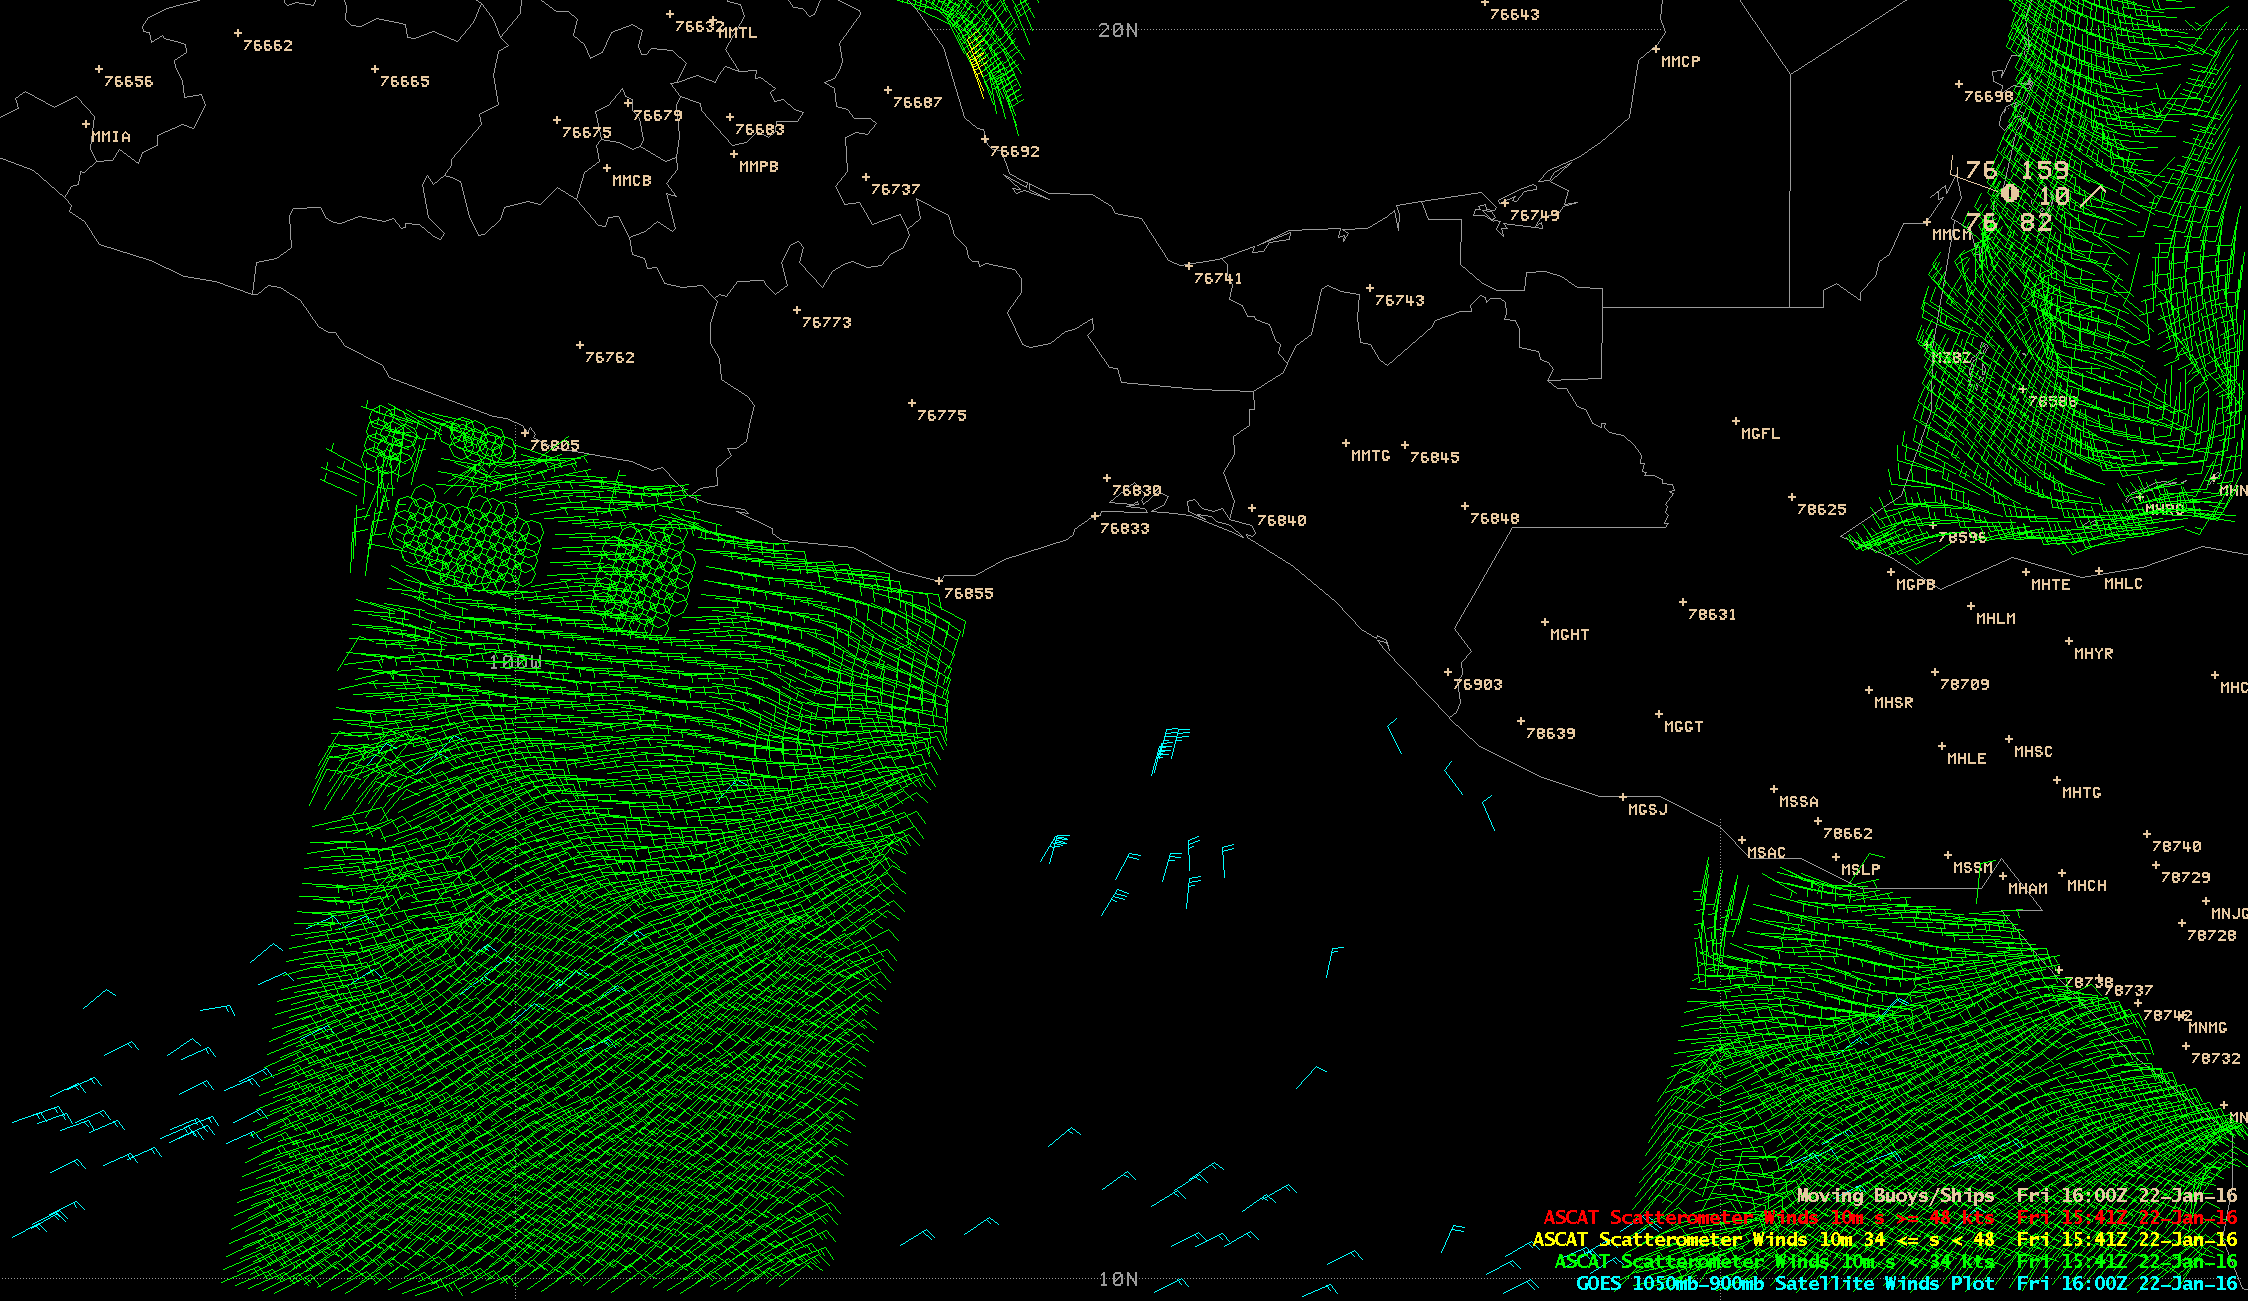 GOES and ASCAT satellite winds [click to play animation]